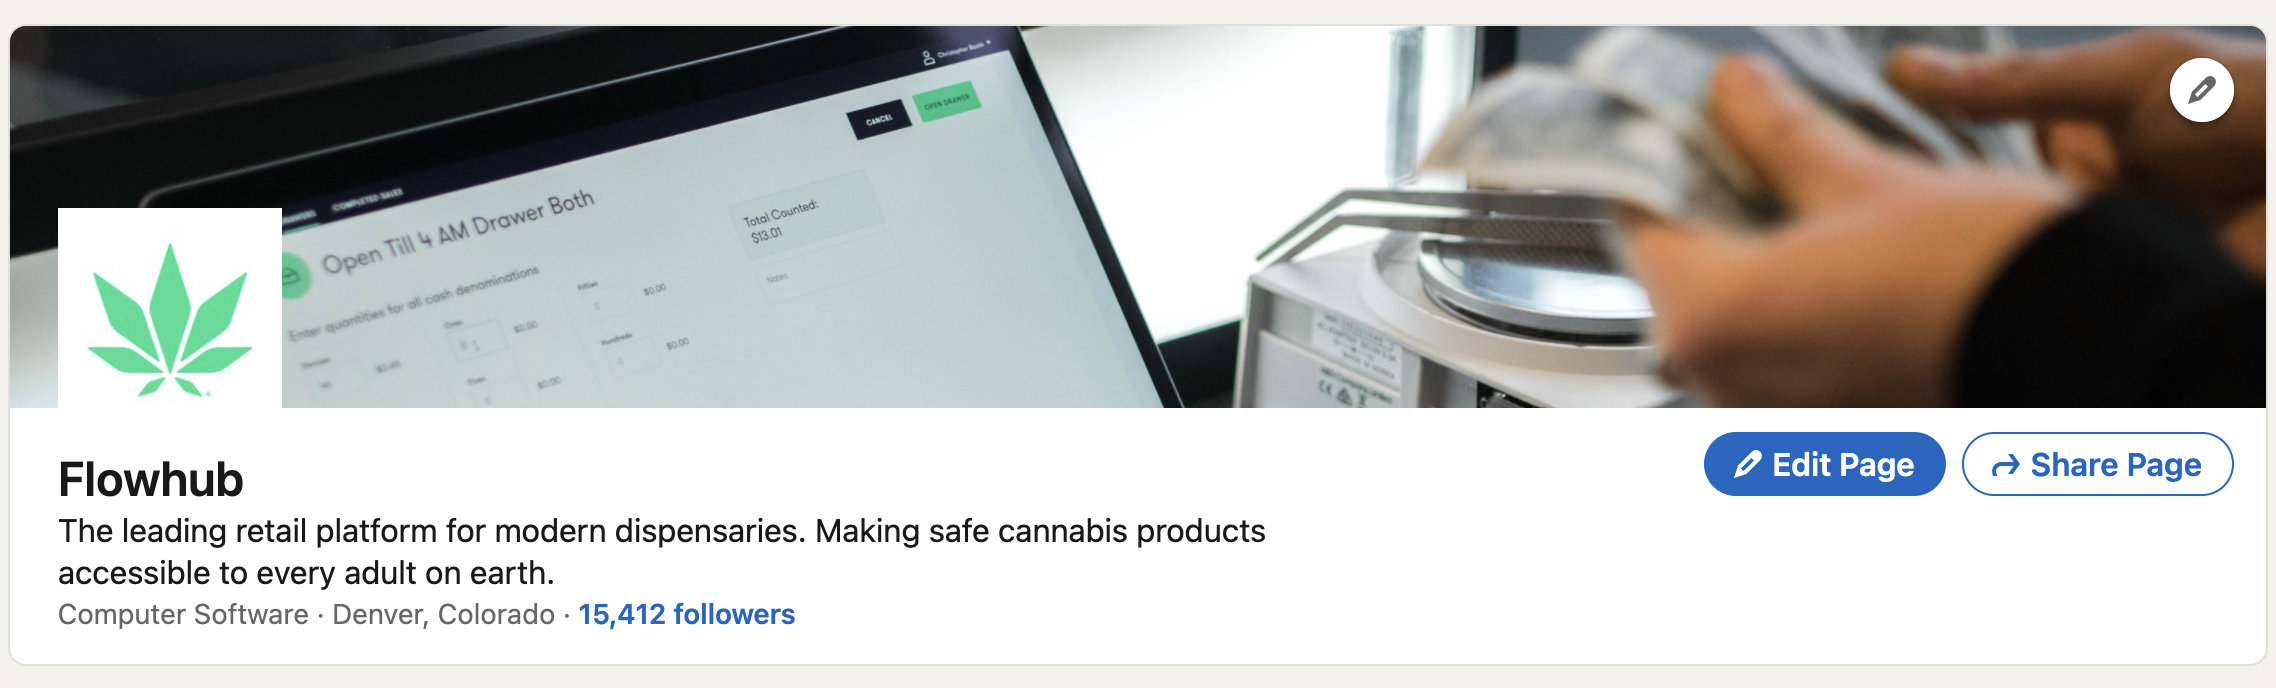 How to set up your dispensary's LinkedIn profile